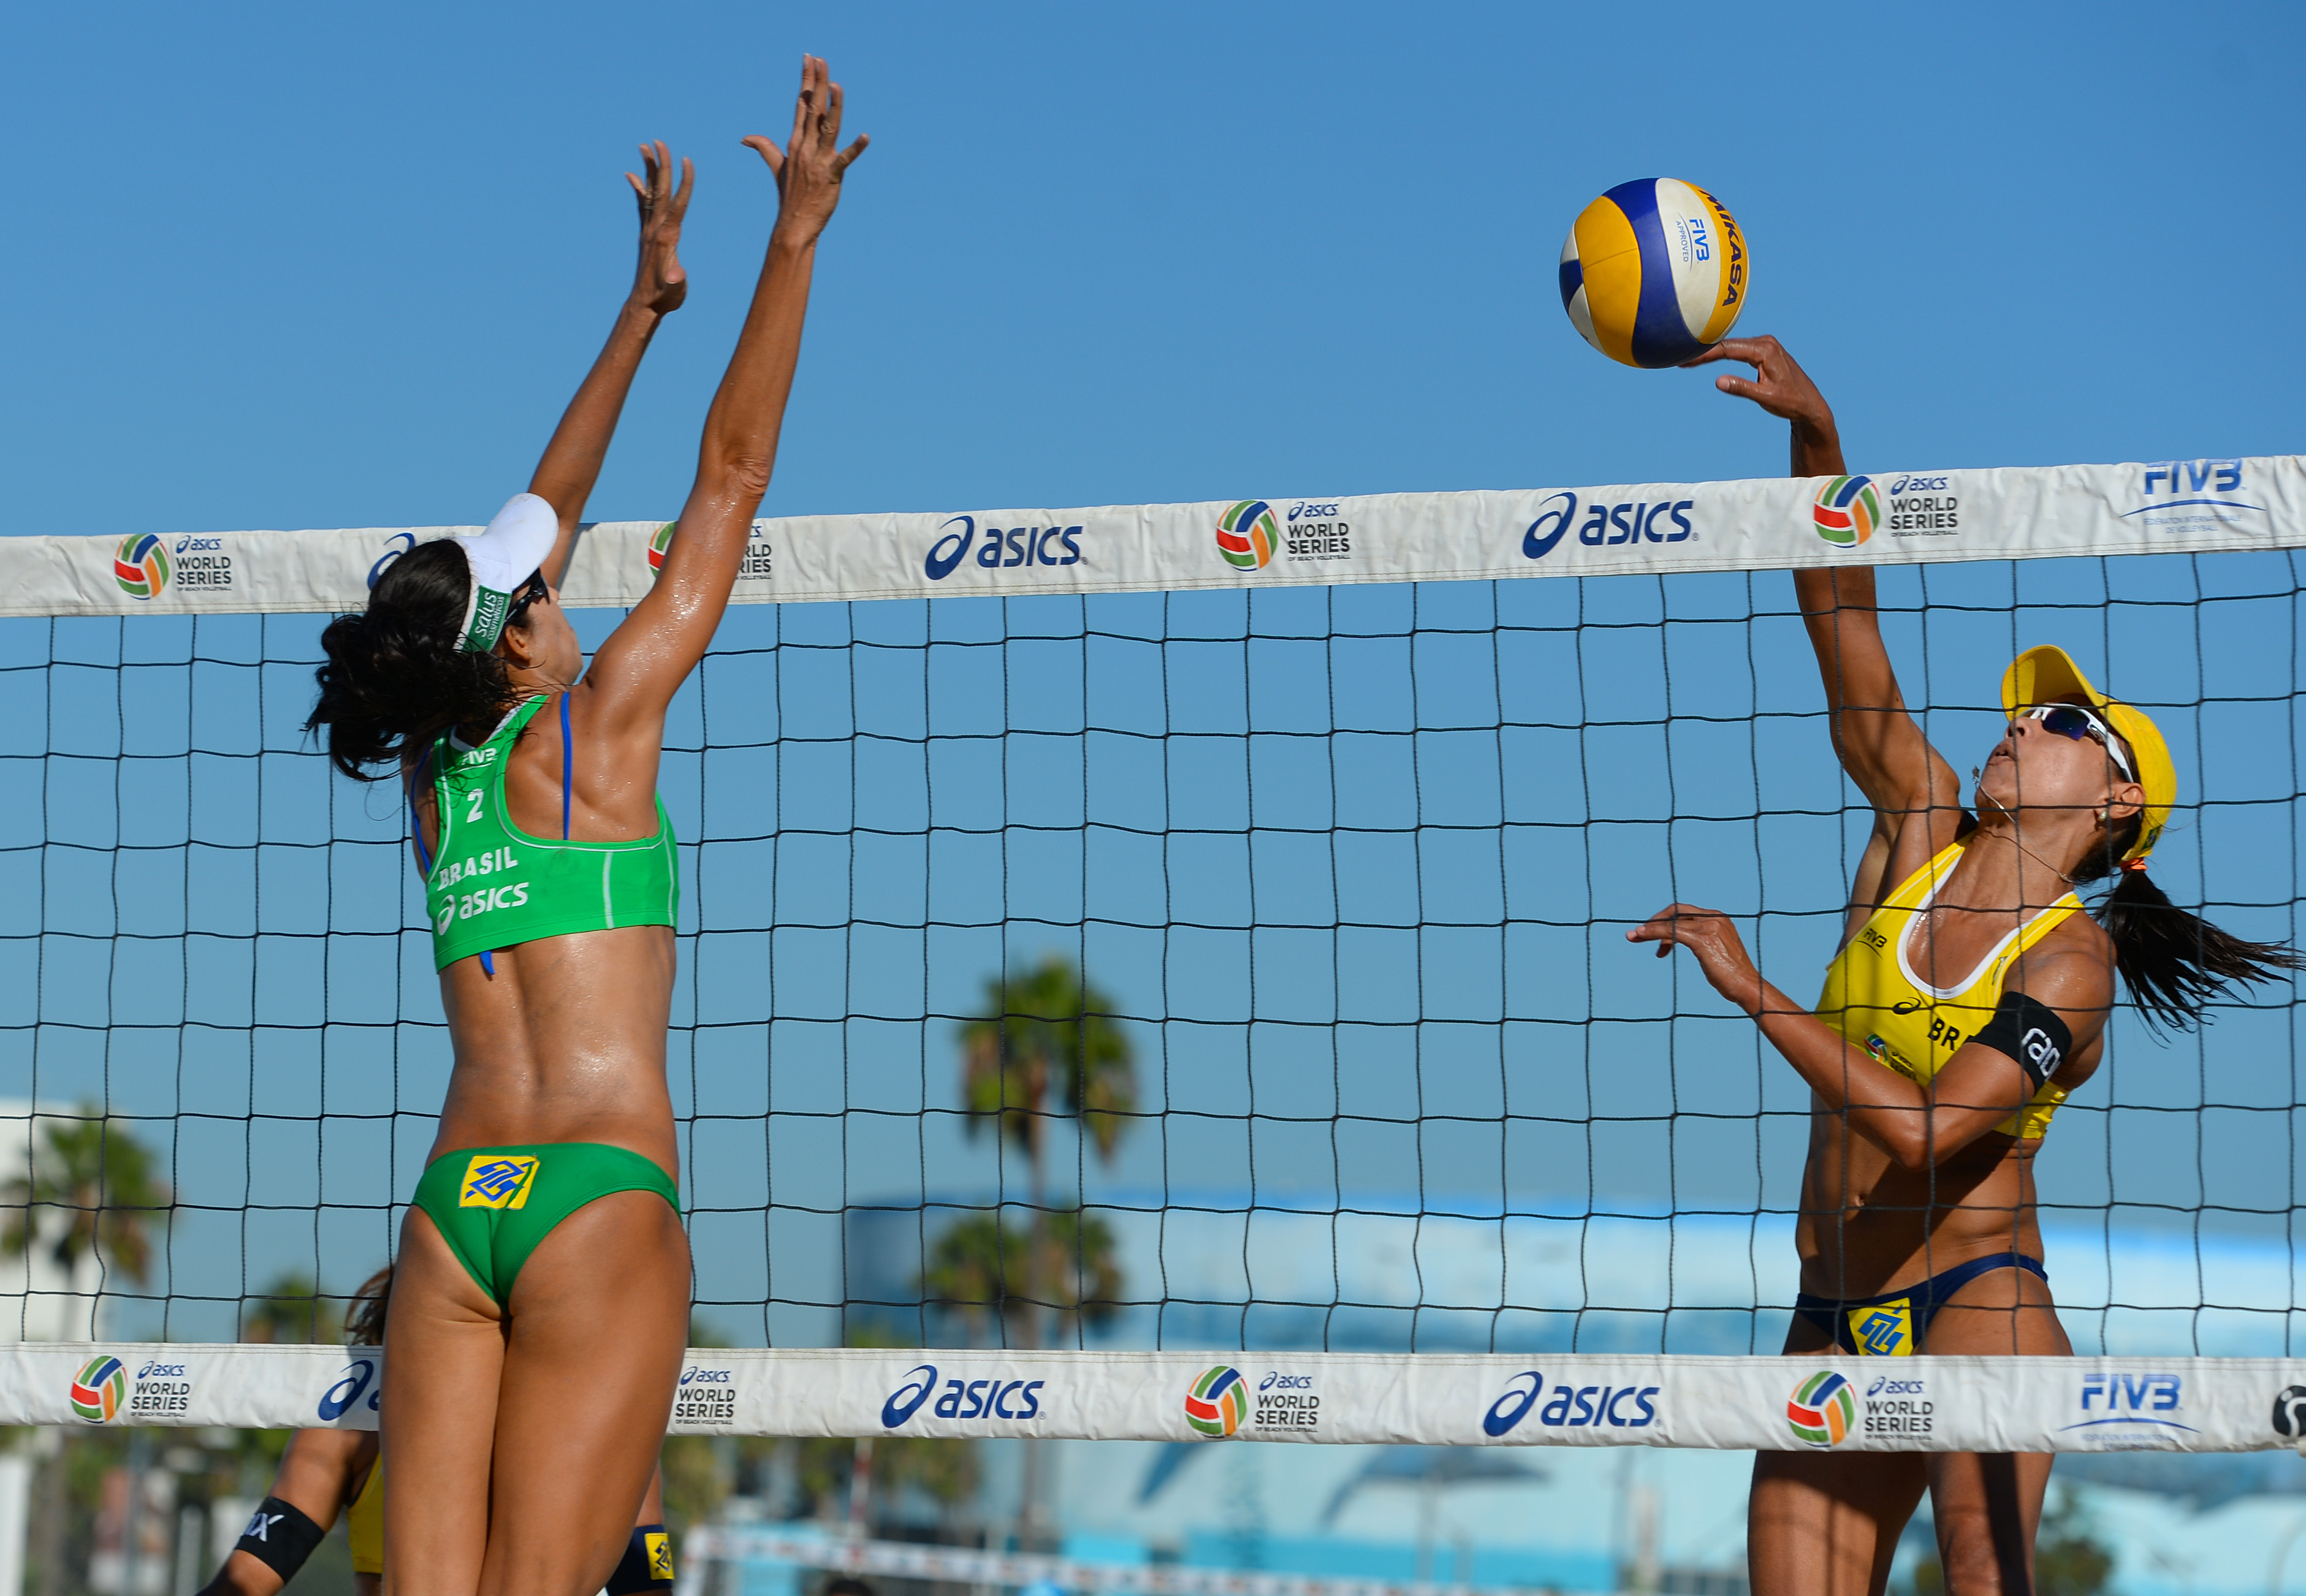 In an all-Brazilian first round pool play match, Juliana Feslisberta goes up high to attempt to kill the Mikasa. Talia Atunes and Larissa Franca defeated Felisberta and Maria Antonelli in two sets.